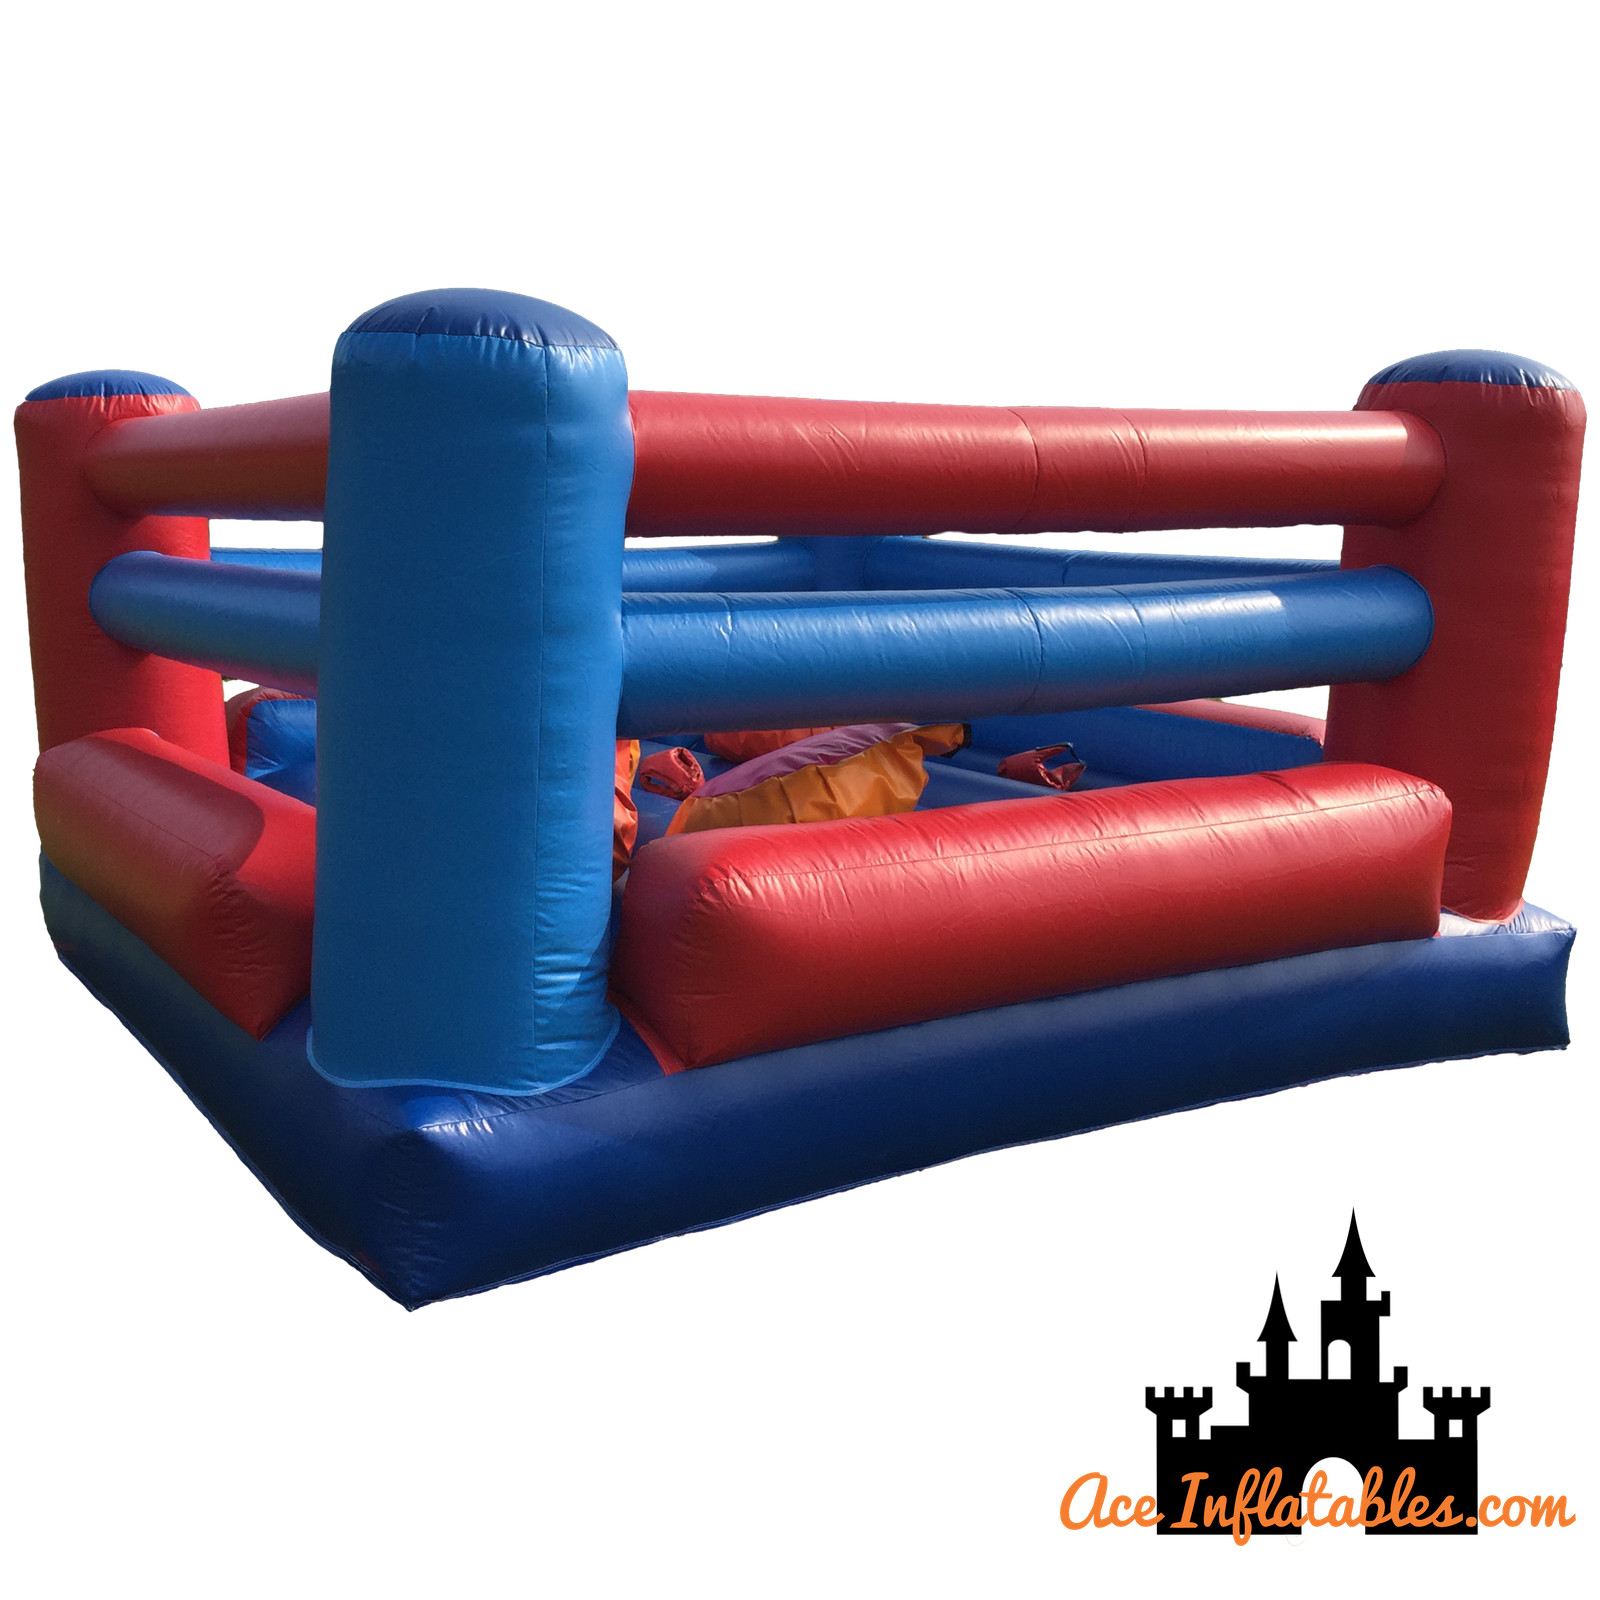 Fitted In Sussex Surrey And Kent: Bouncy Castles,Assault Courses & Soft Play